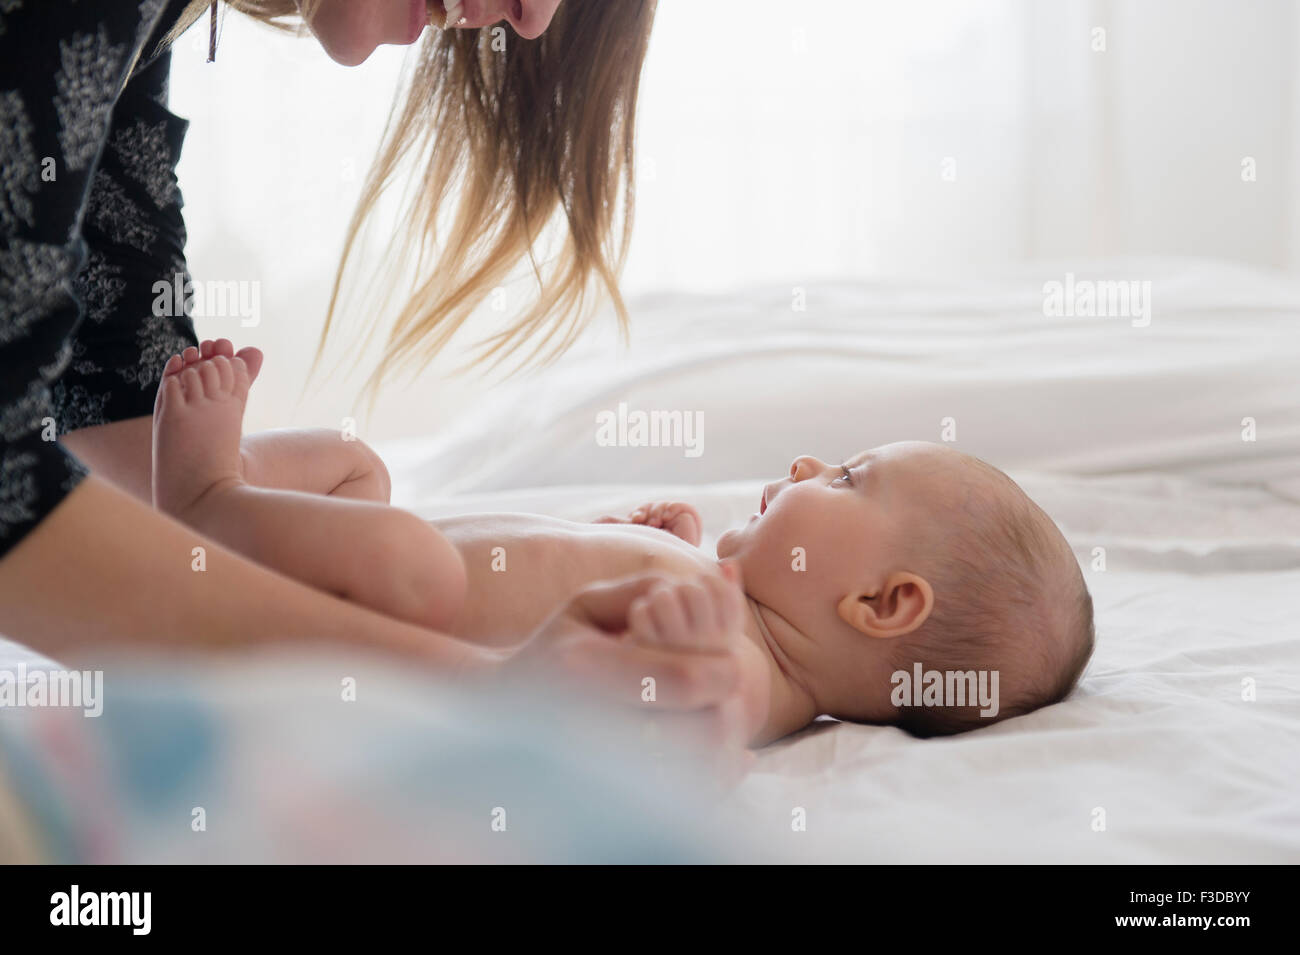 Mother playing with baby girl (2-5 months) on bed - Stock Image